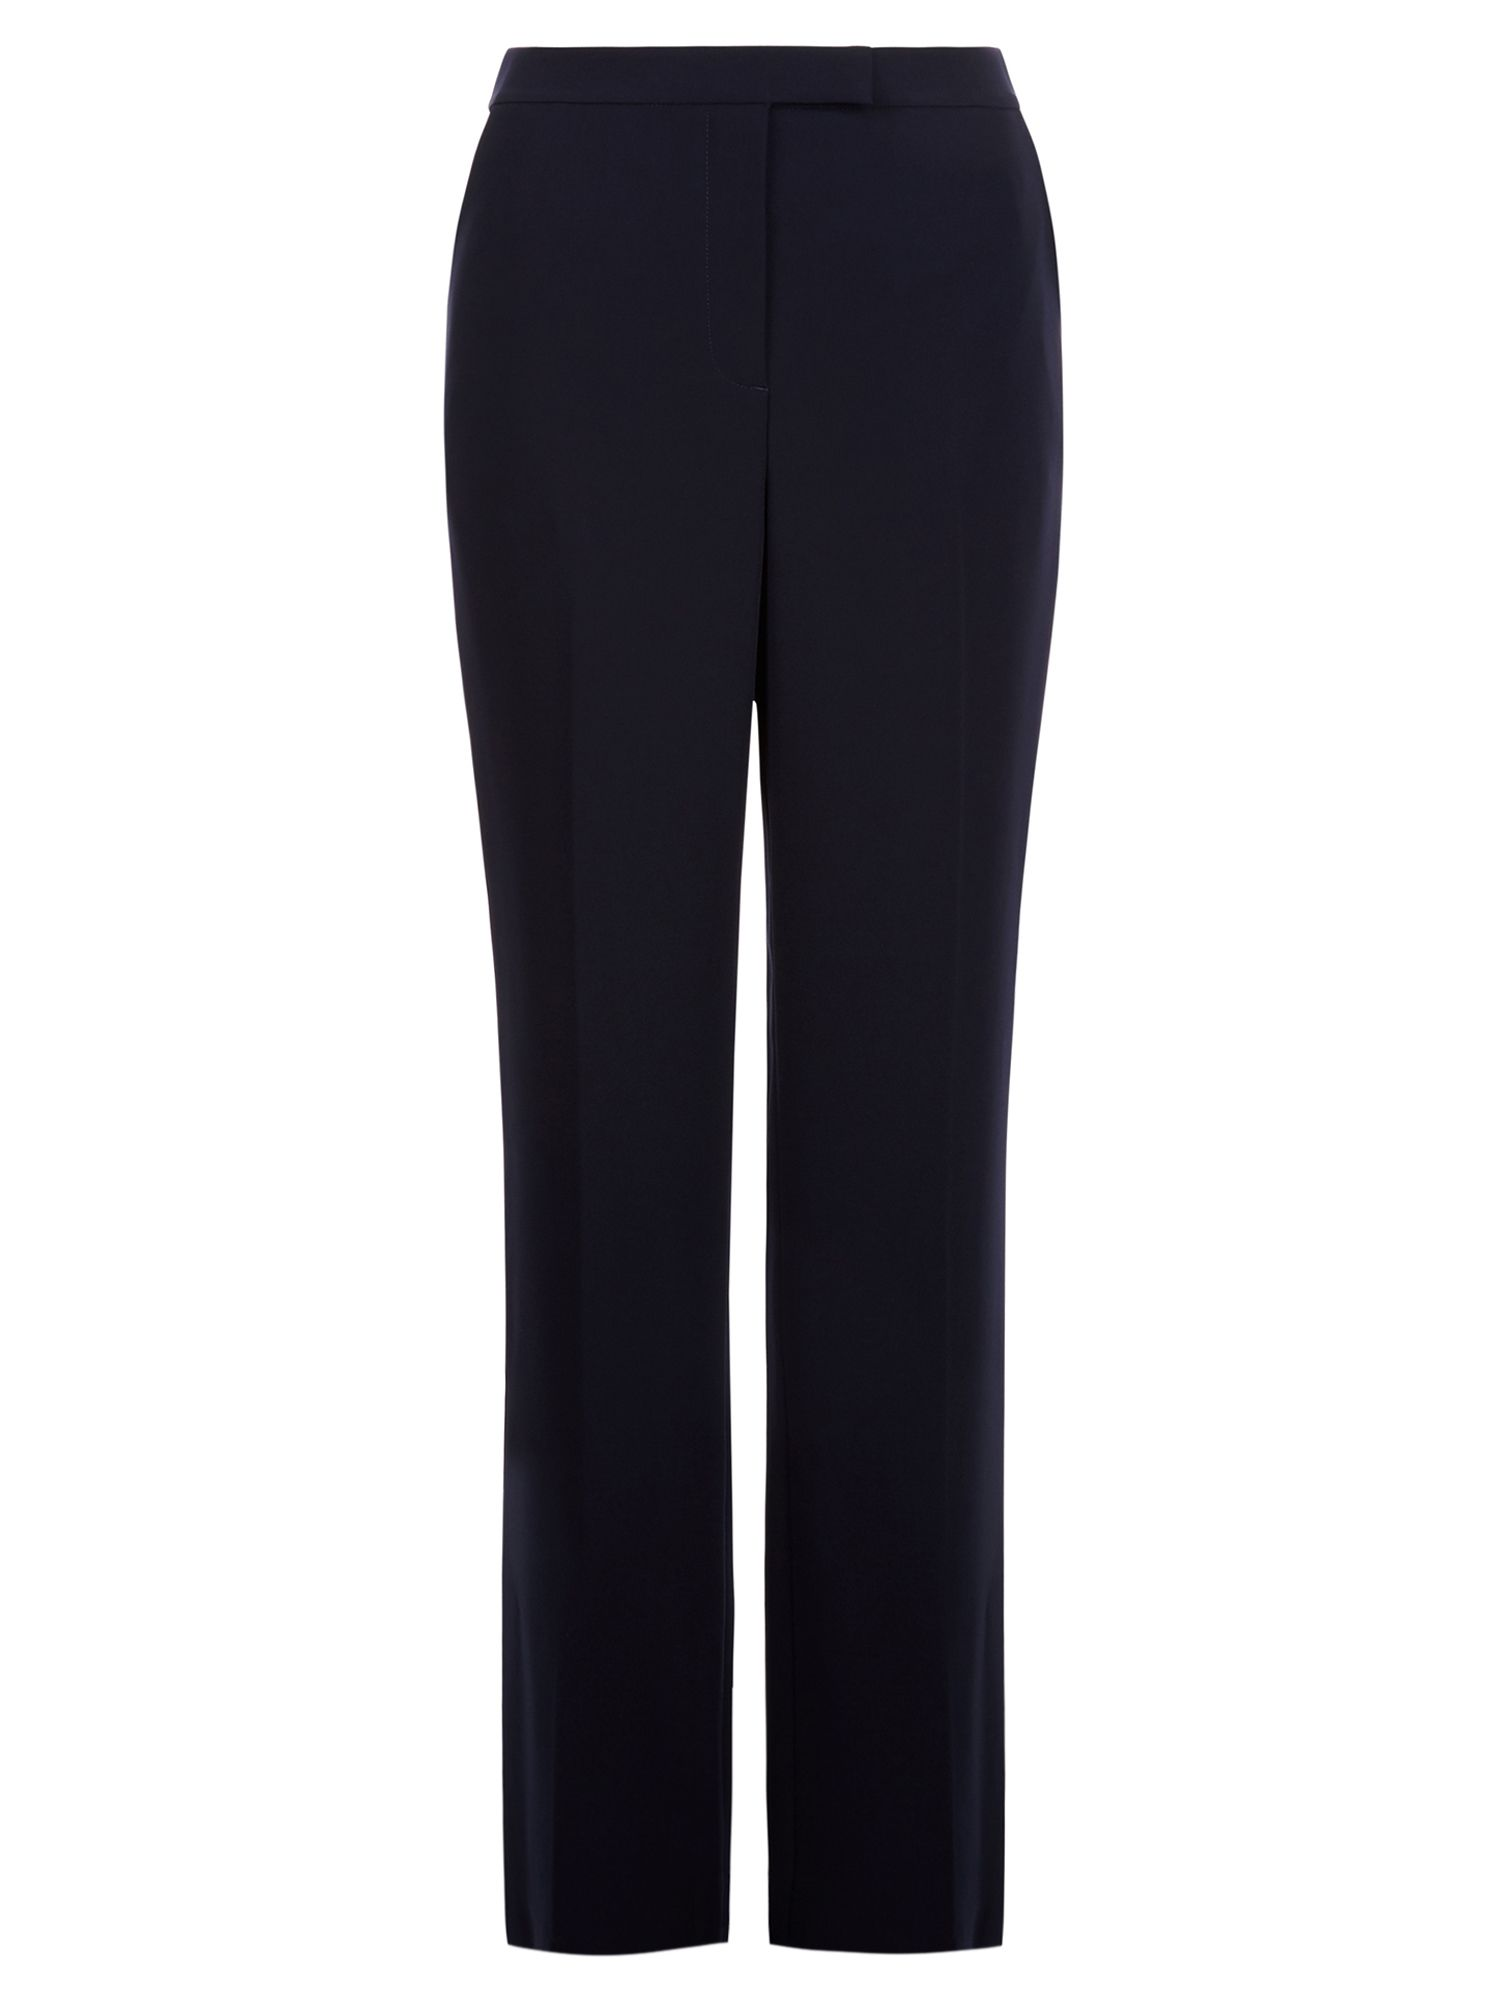 Hobbs Catherine Trouser, Blue